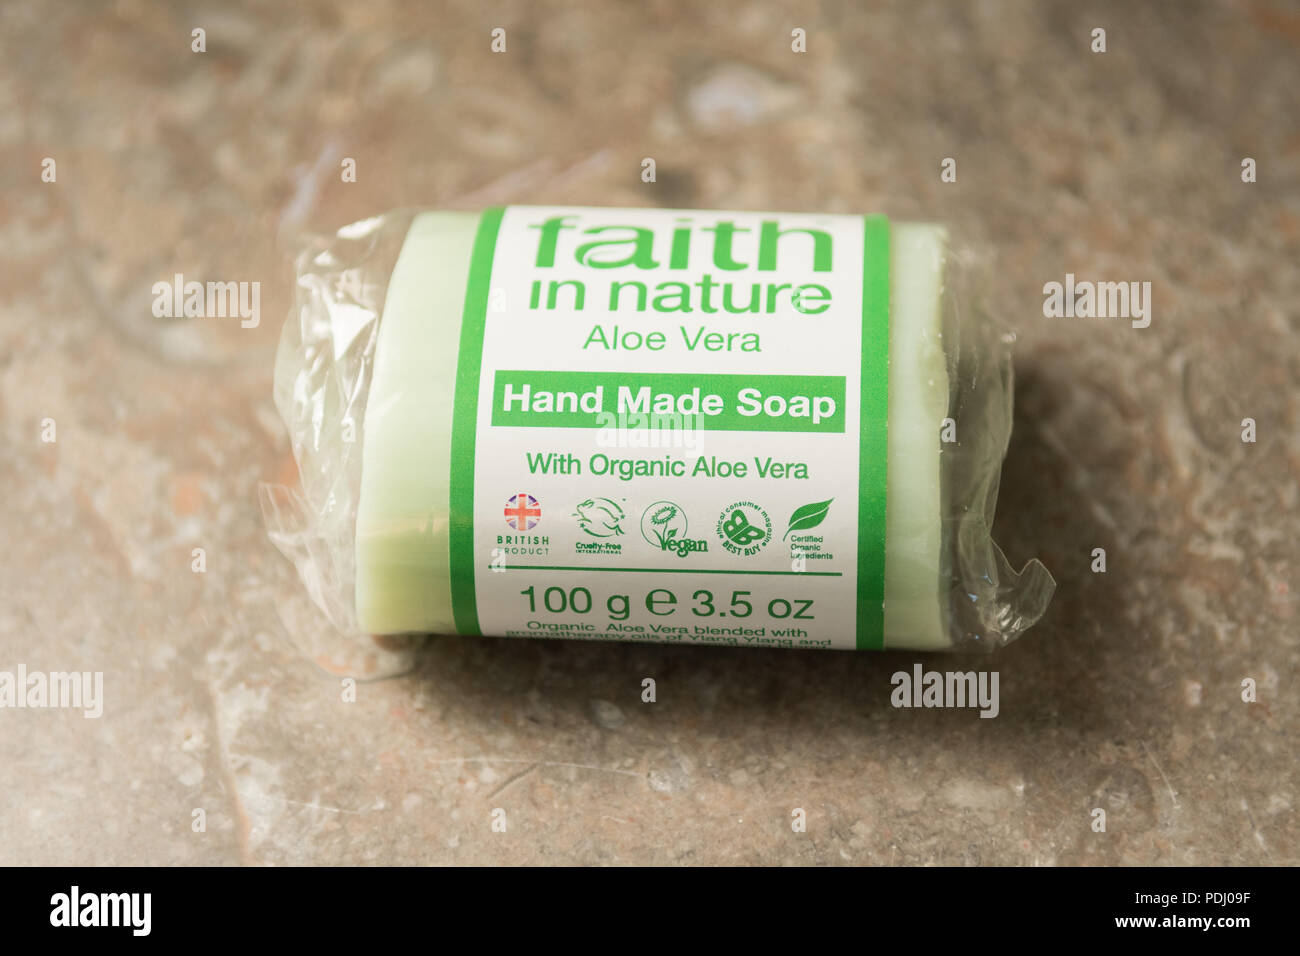 ethical consumer product - Faith in Nature solid soap bar information label - cruelty free, organic, vegan symbols - Stock Image